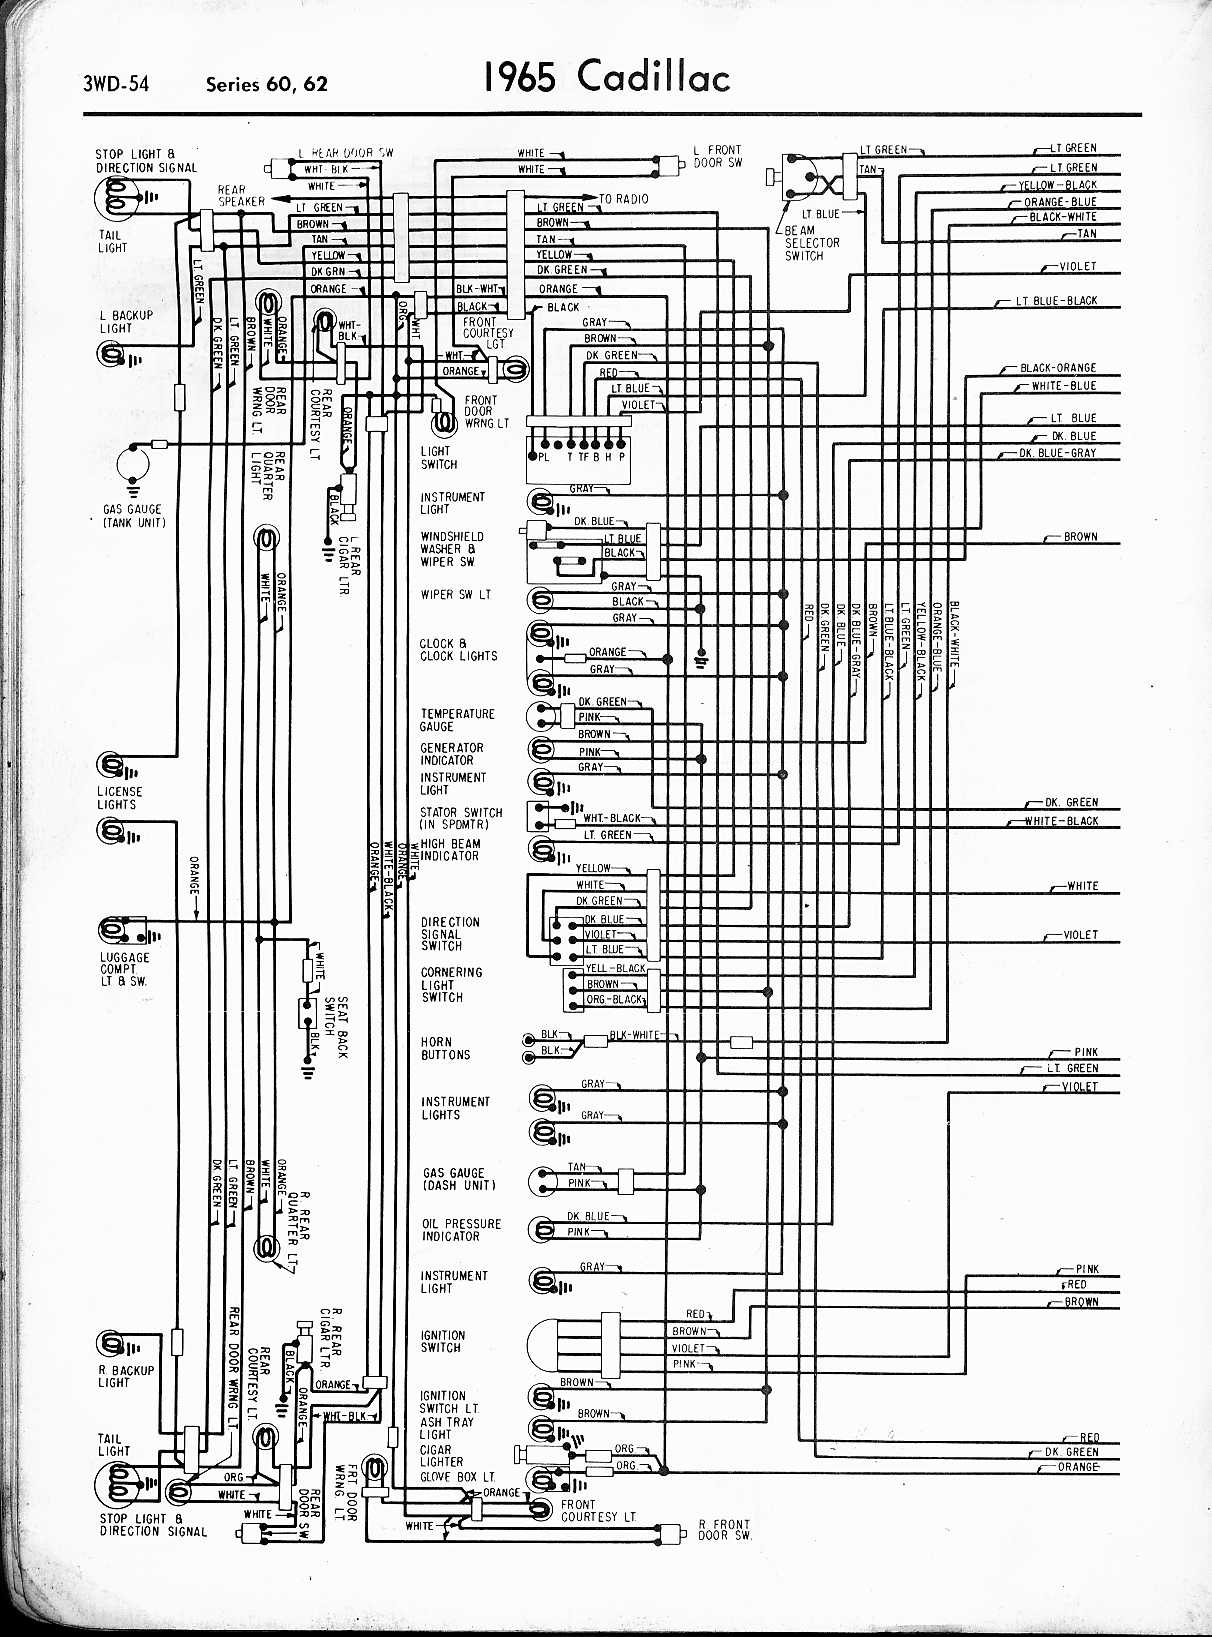 1970 C10 Steering Column Wiring Diagram Diy Enthusiasts Chevy Truck Cadillac Diagrams Block And Schematic Rh Lazysupply Co Harness 1969 Chevrolet